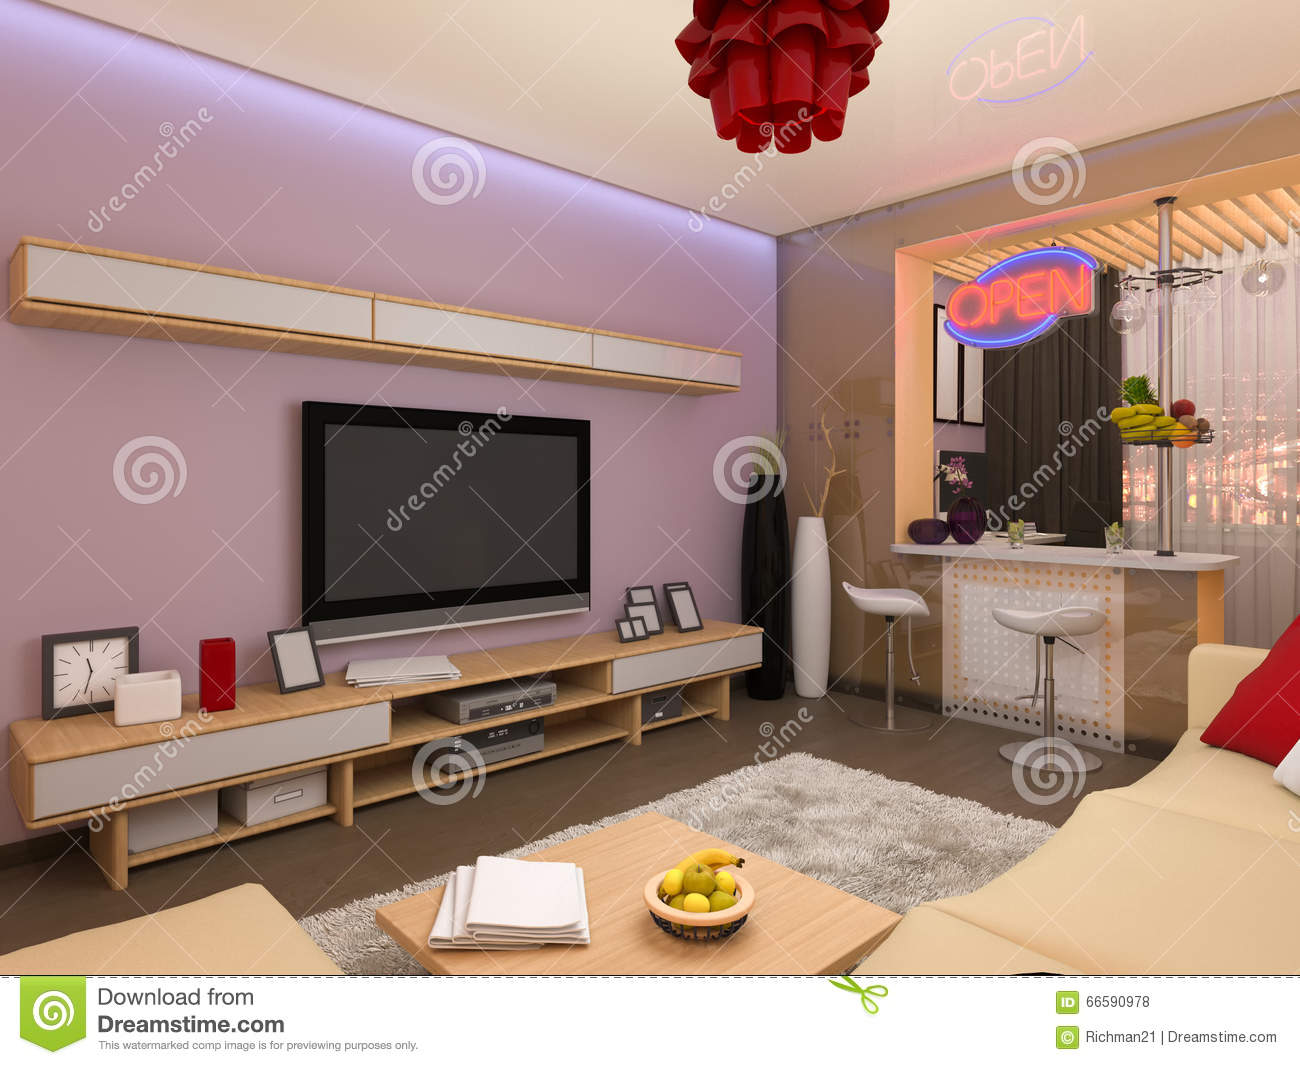 3d render of the interior design of the living room in a modern s stock illustration image - Interior design in living room ...